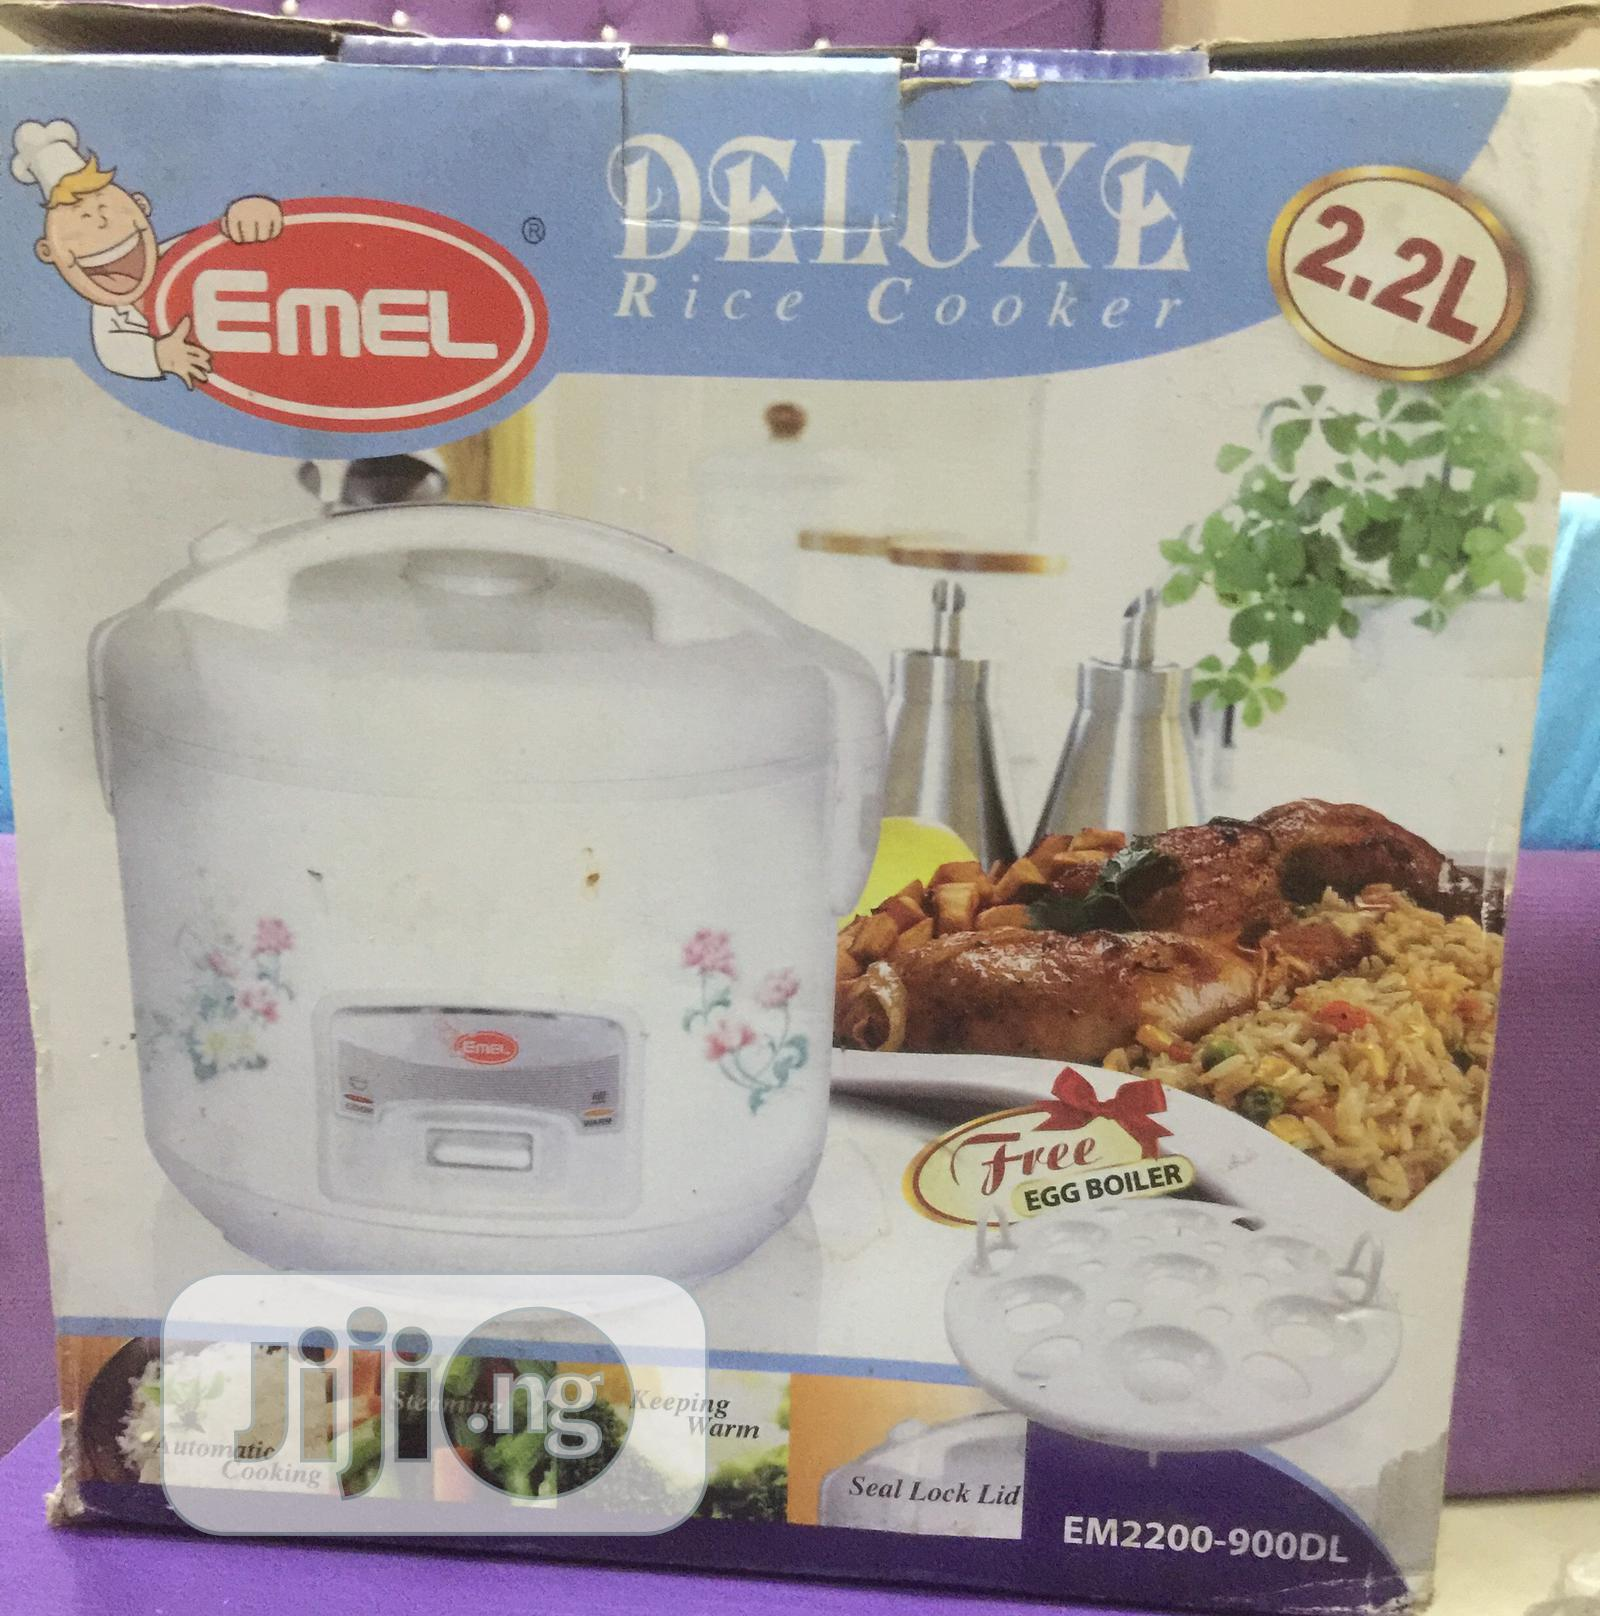 Brand New Emel Rice Cooker And Egg Boiler 2 2l In Amuwo Odofin Kitchen Appliances Queen Udoh Jiji Ng For Sale In Amuwo Odofin Queen Udoh On Jiji Ng